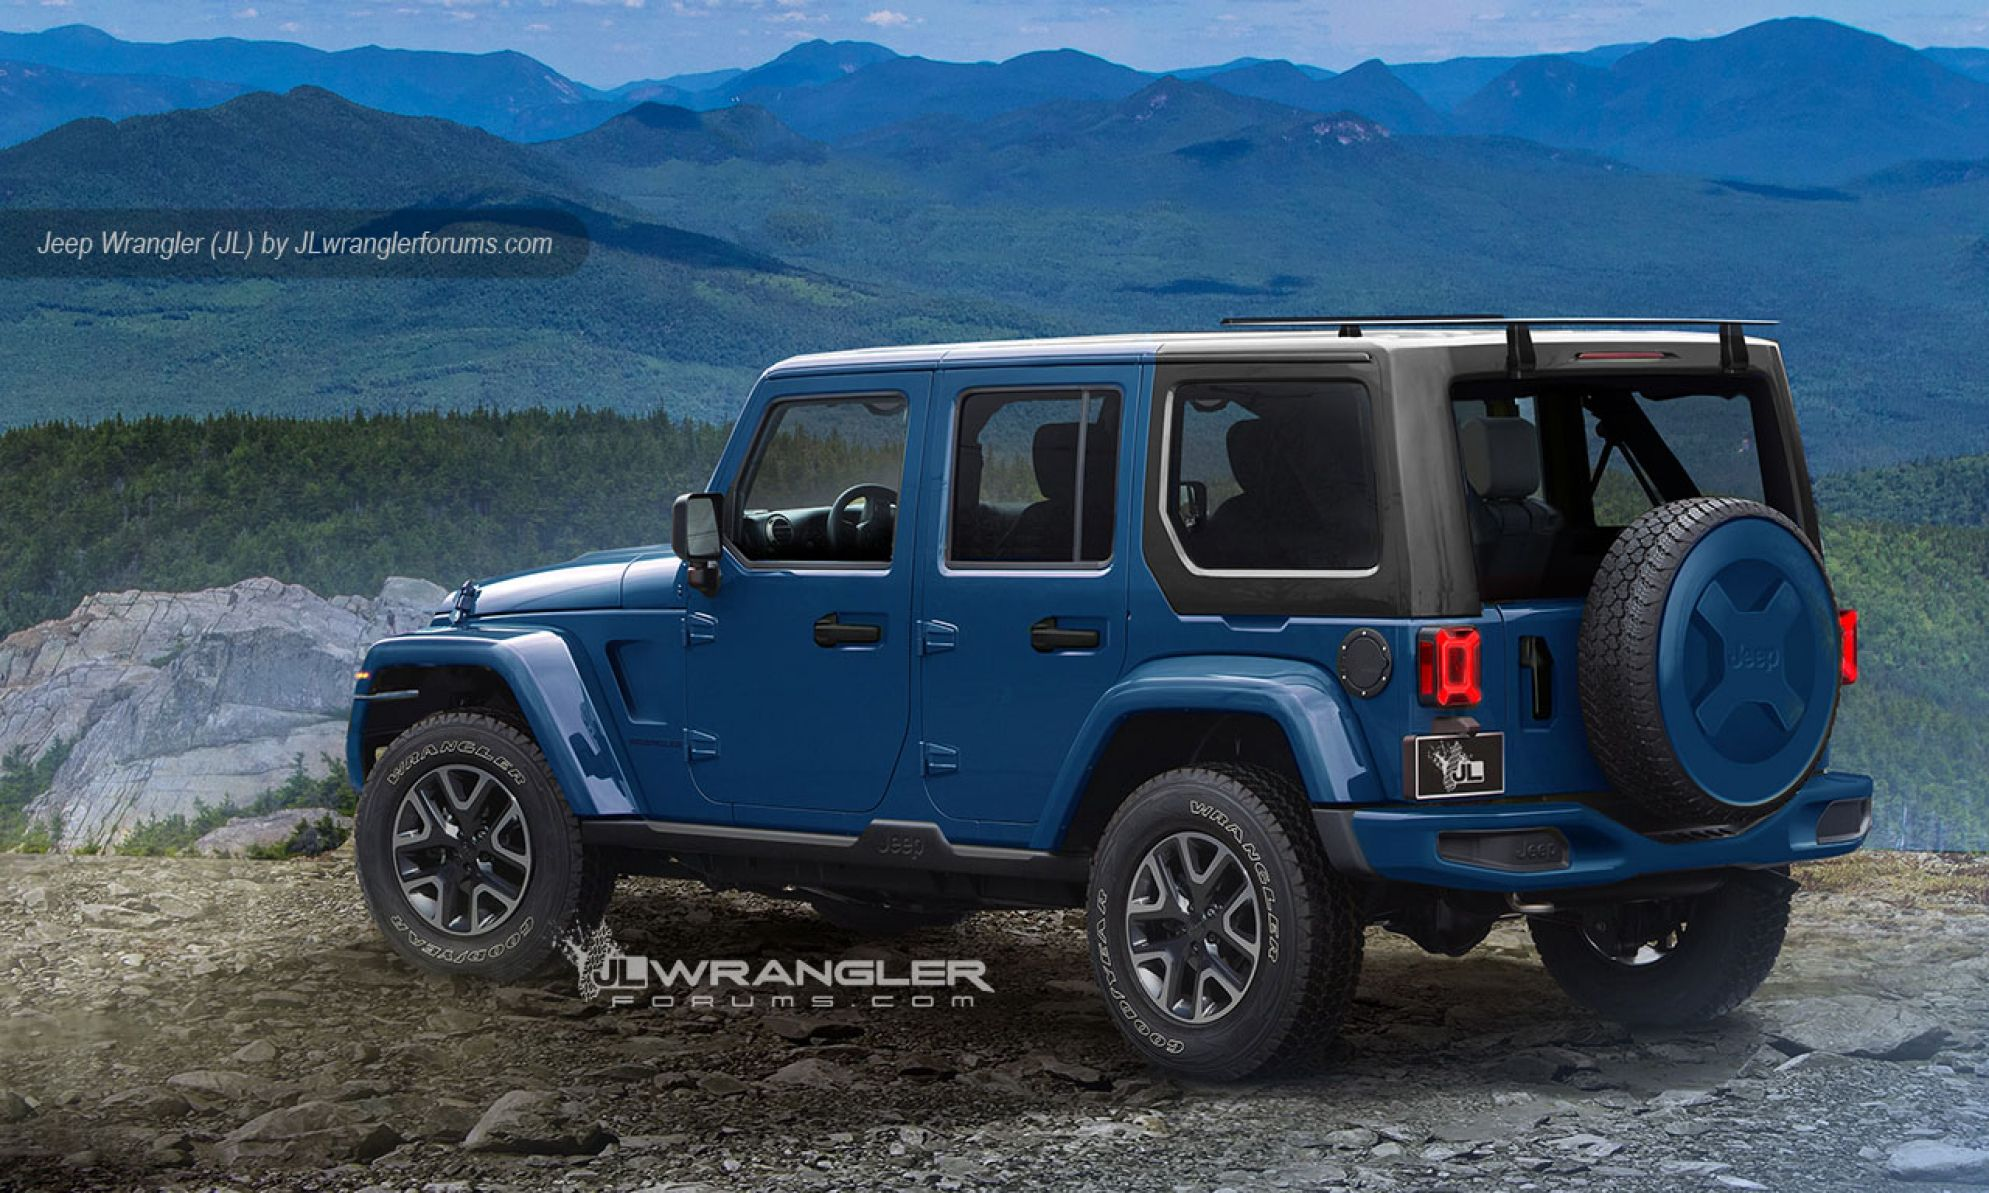 2018 Jeep Wrangler Purple Desktop Wallpaper Jeep Wrangler Unlimited Jeep Wrangler Pickup Truck Jeep Wrangler Pickup